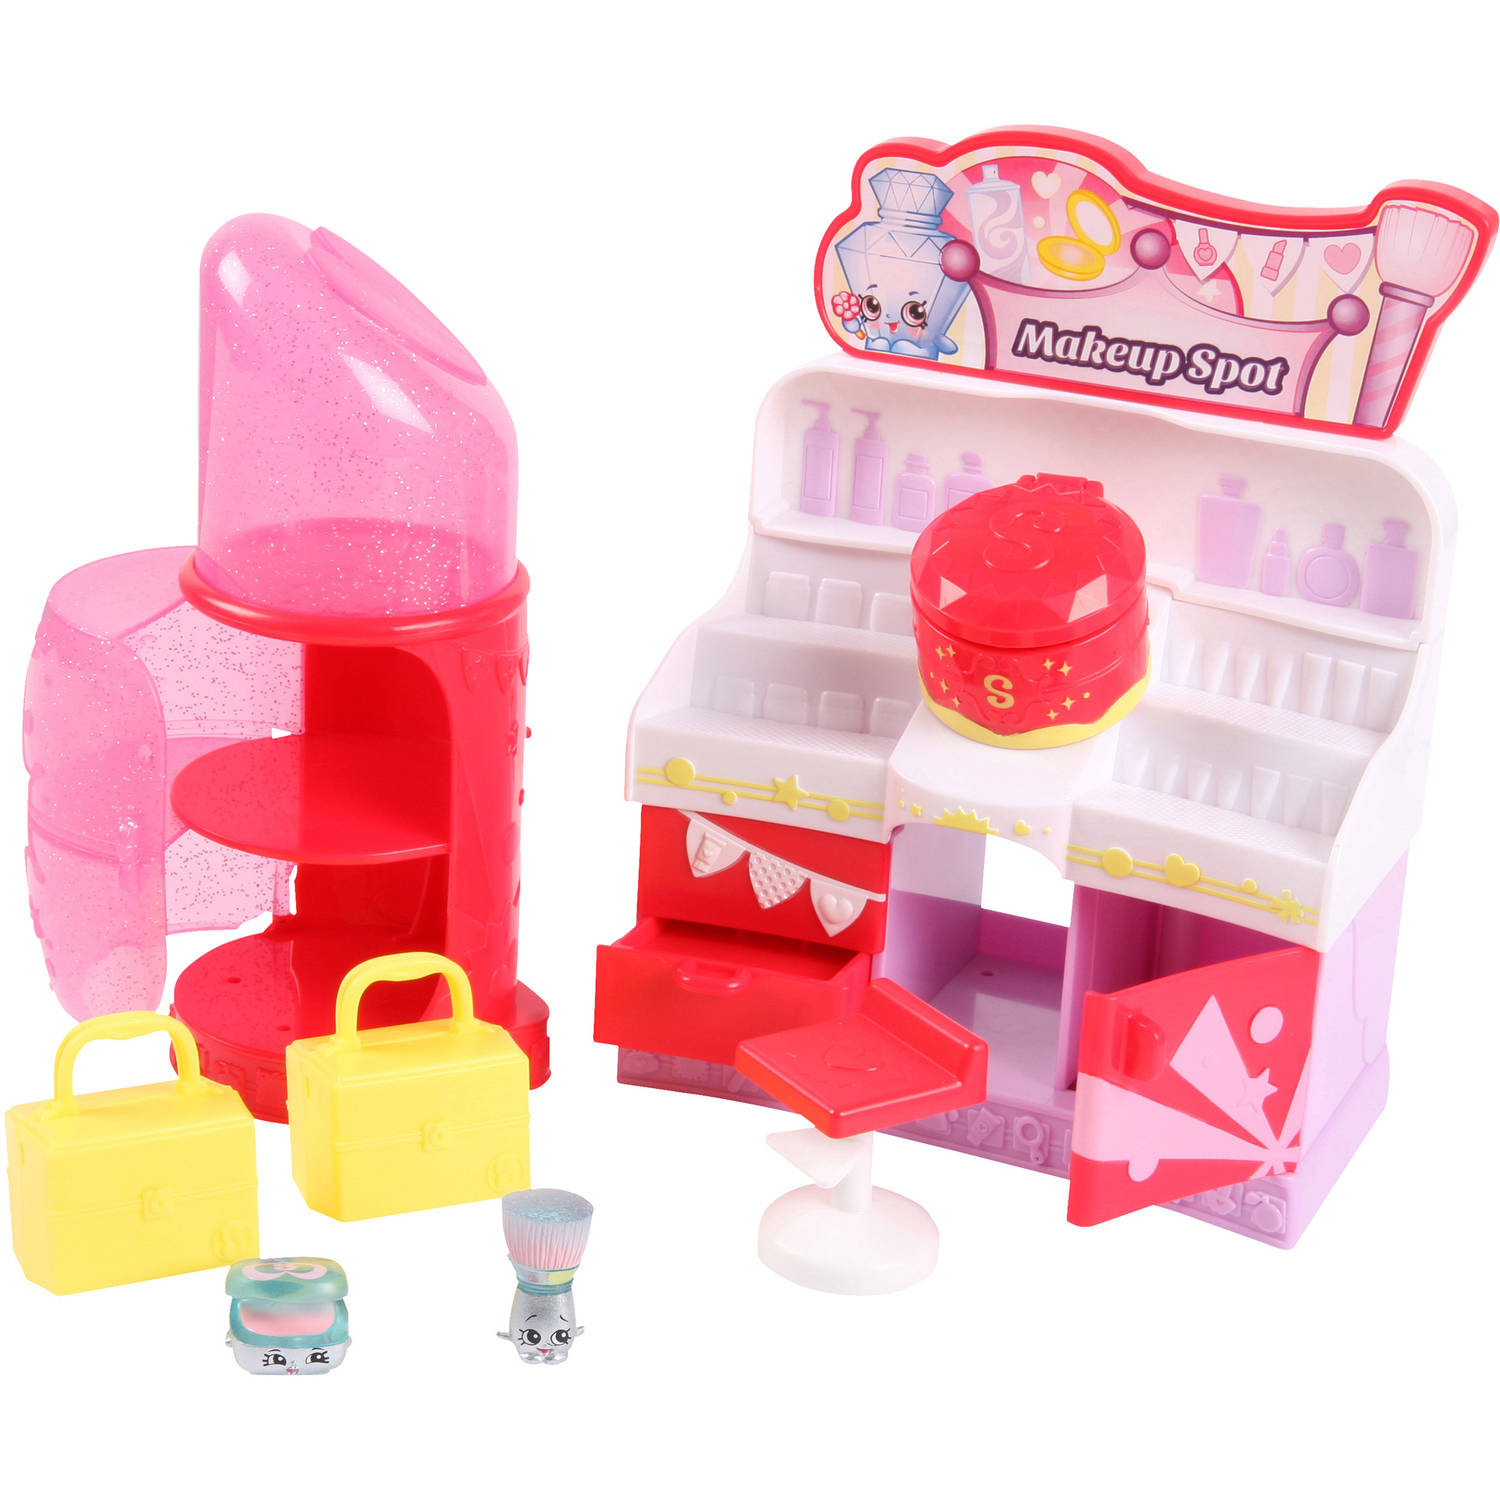 Shopkins Playsets, Makeup Spot